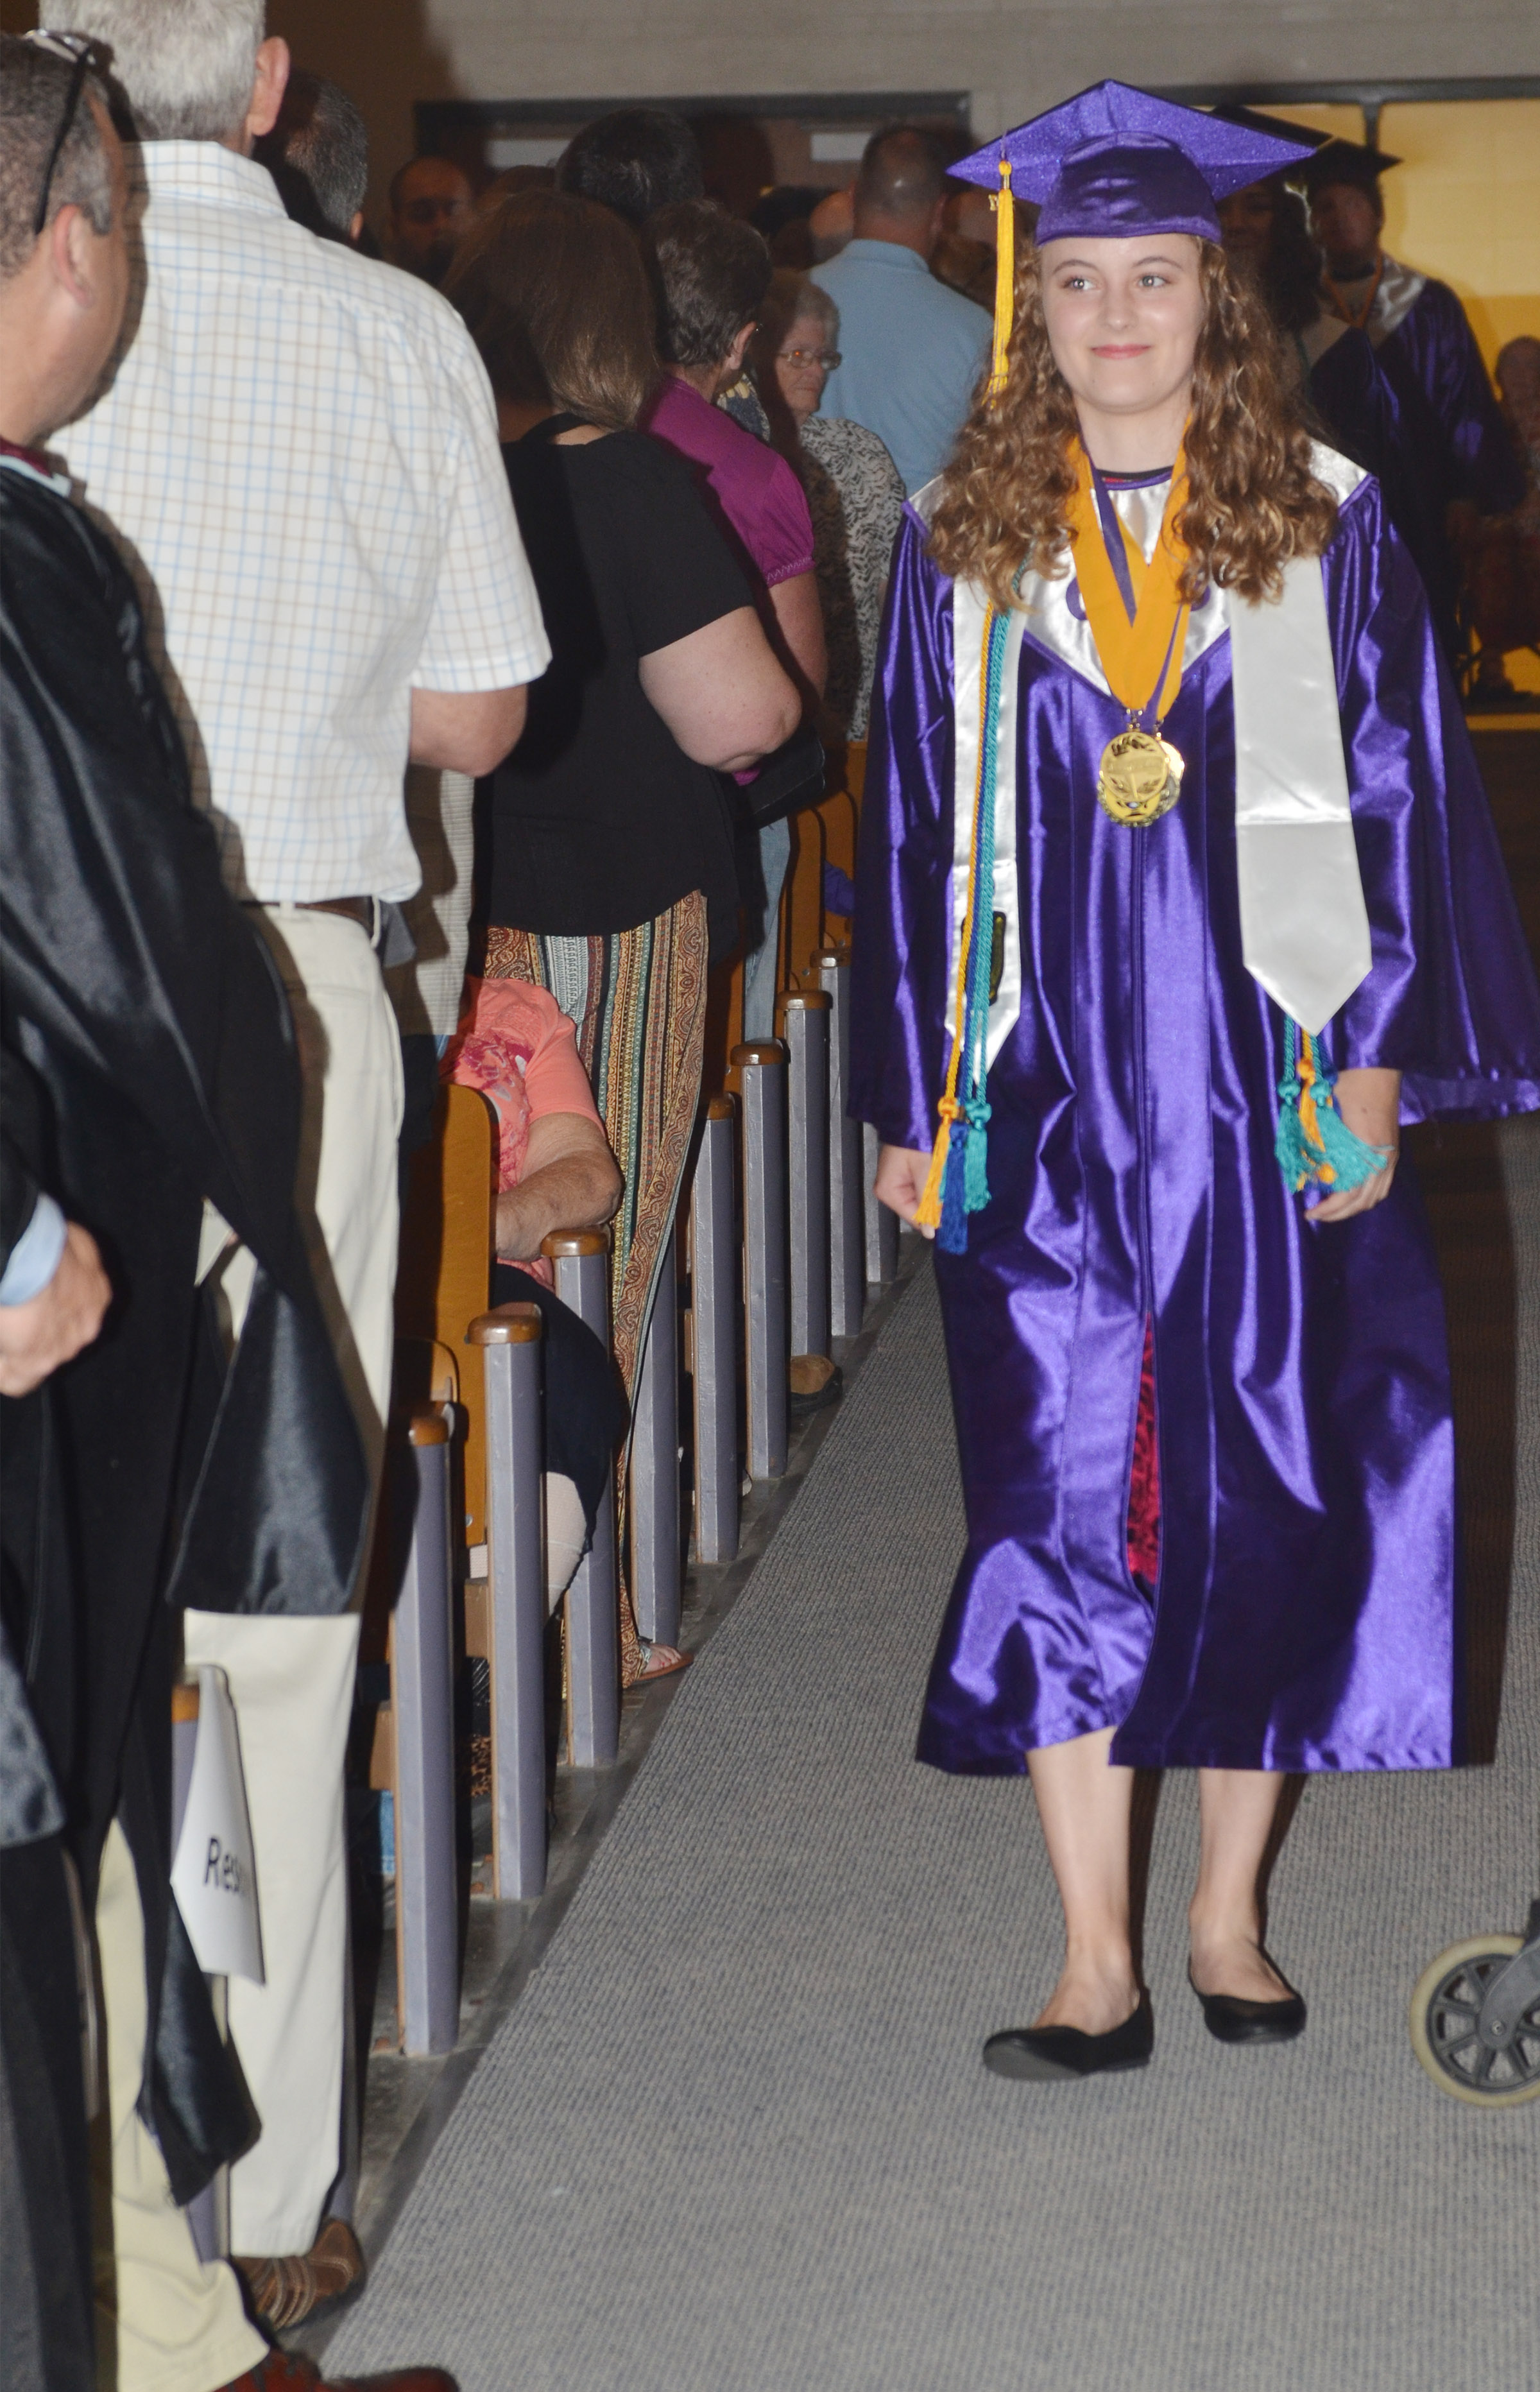 CHS senior Caroline McMahan walks to her seat.